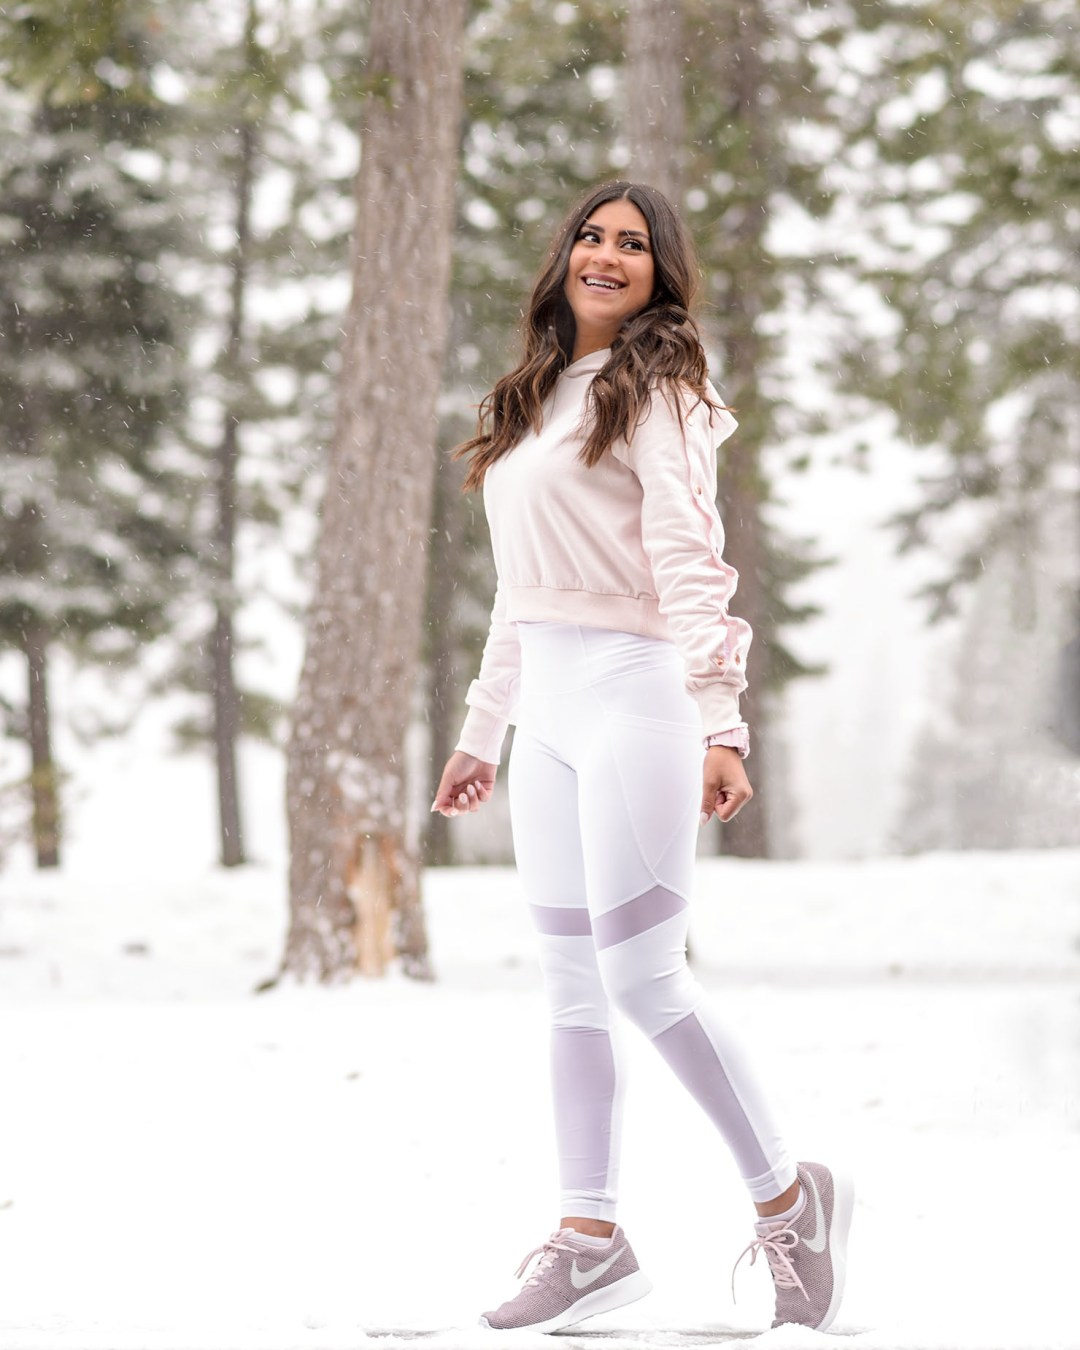 lifestyle blogger Kelsey Kaplan of Kelsey Kaplan Fashion wearing white yoga pants and Nike Tanjun sneakers